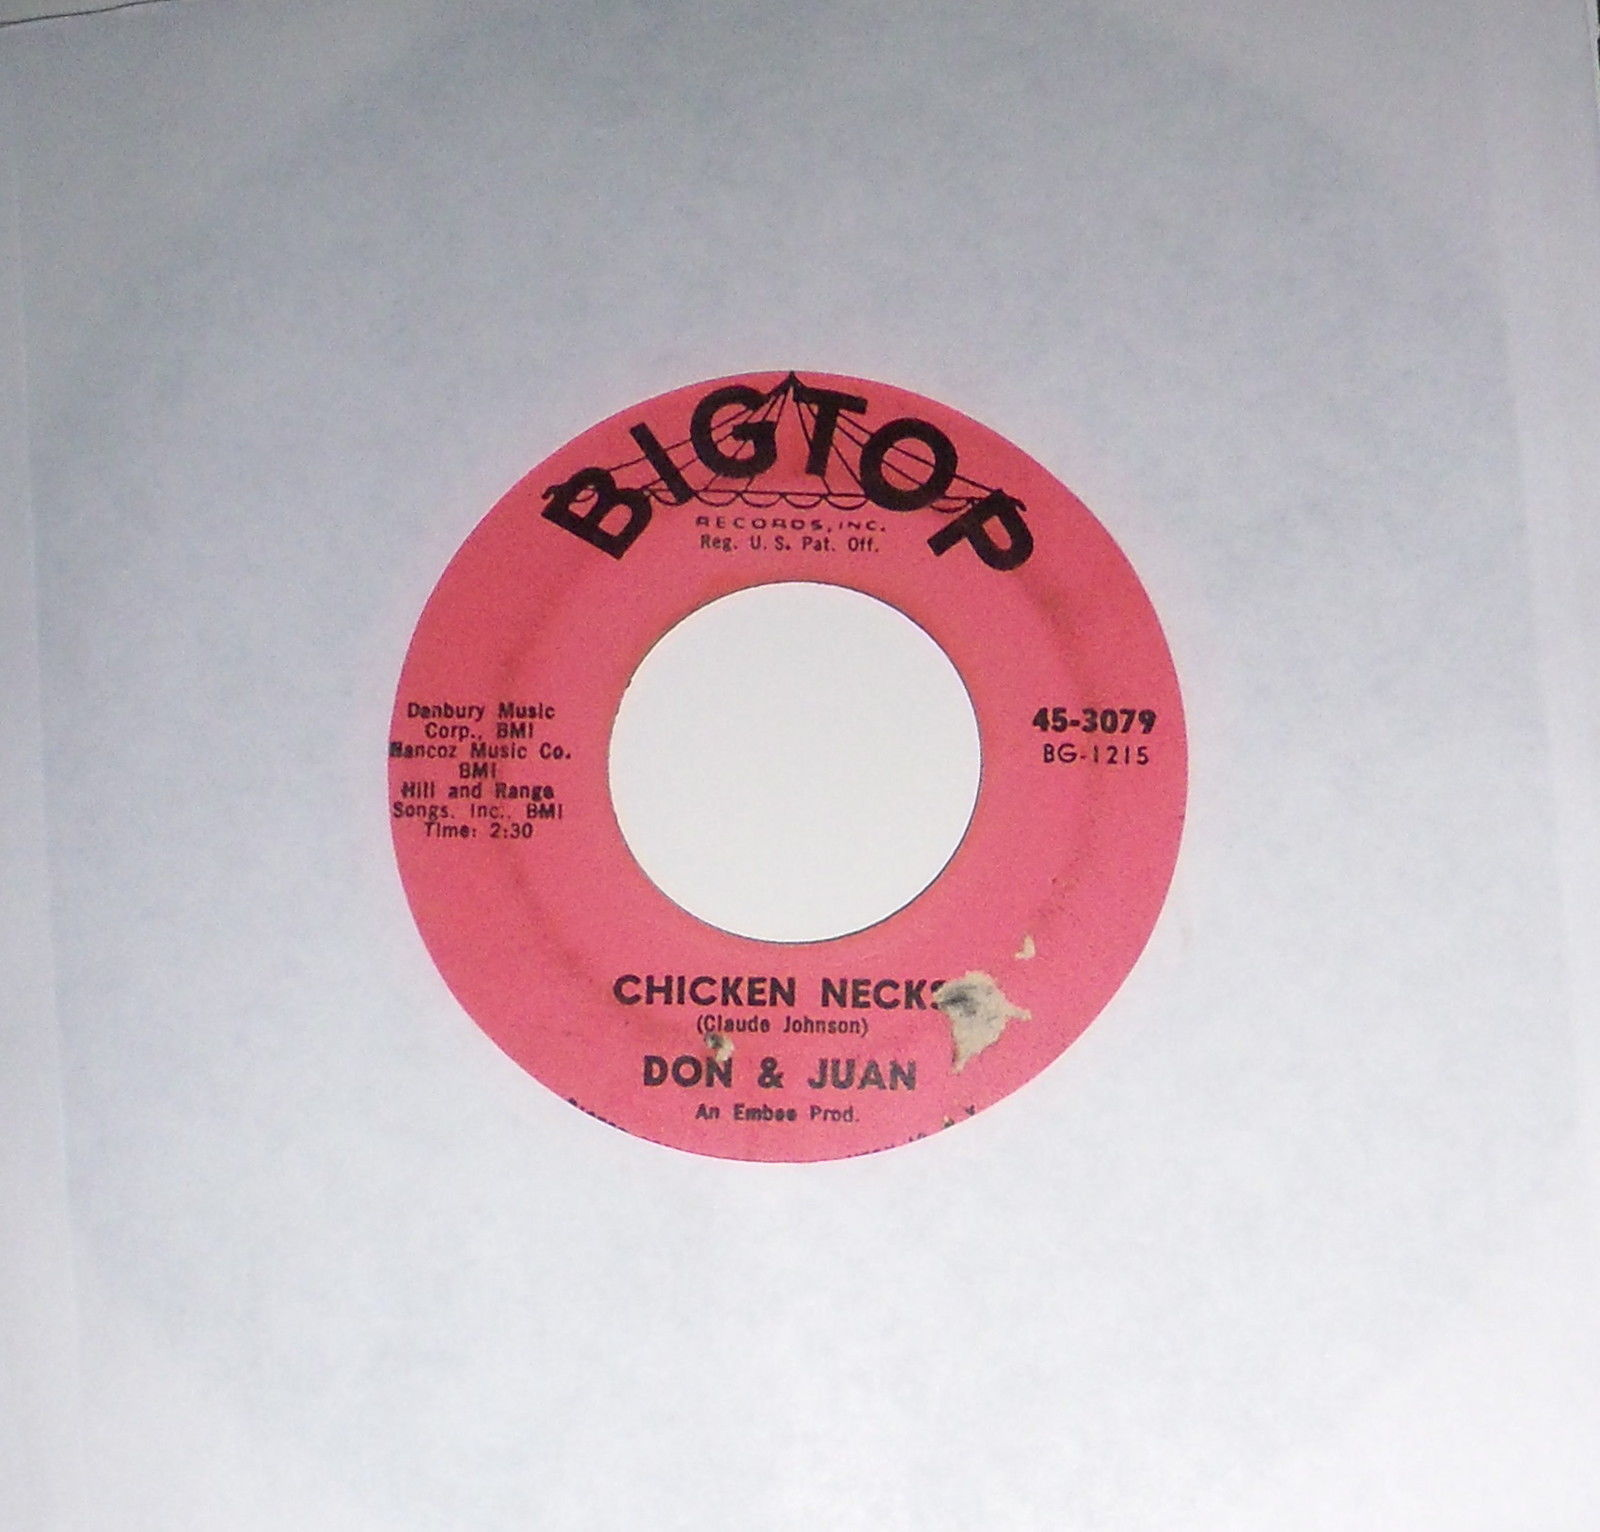 Don & Juan What's Your Name/Chicken Necks 1961 '1A/1B' Bigtop 45-3079